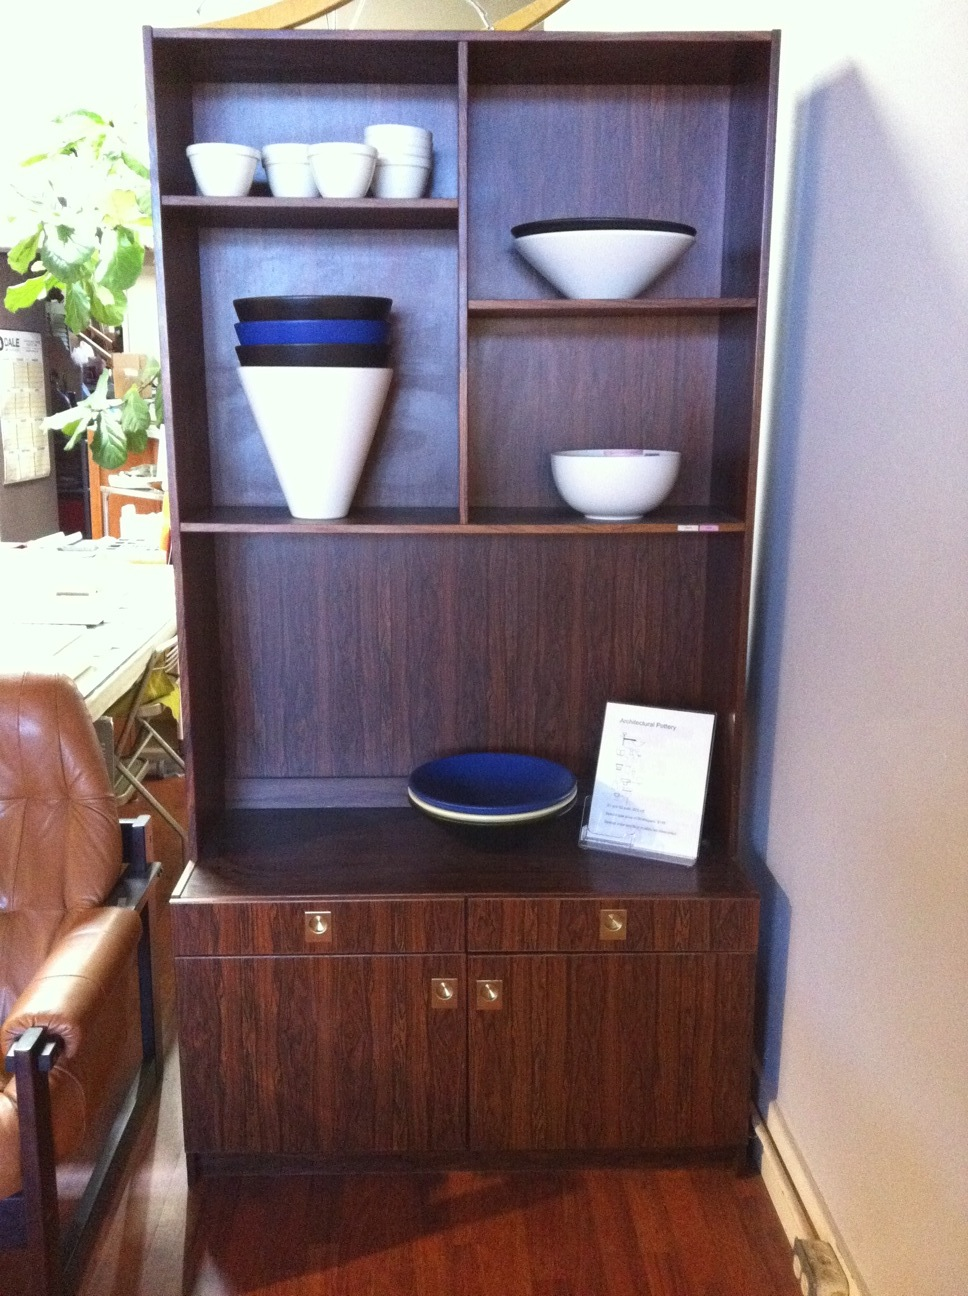 Rosewood storage unit made in Denmark by Mobler.  41 inches wide, 19 inches deep, 79.5 inches high.  SALE $895.  SKU# F0028